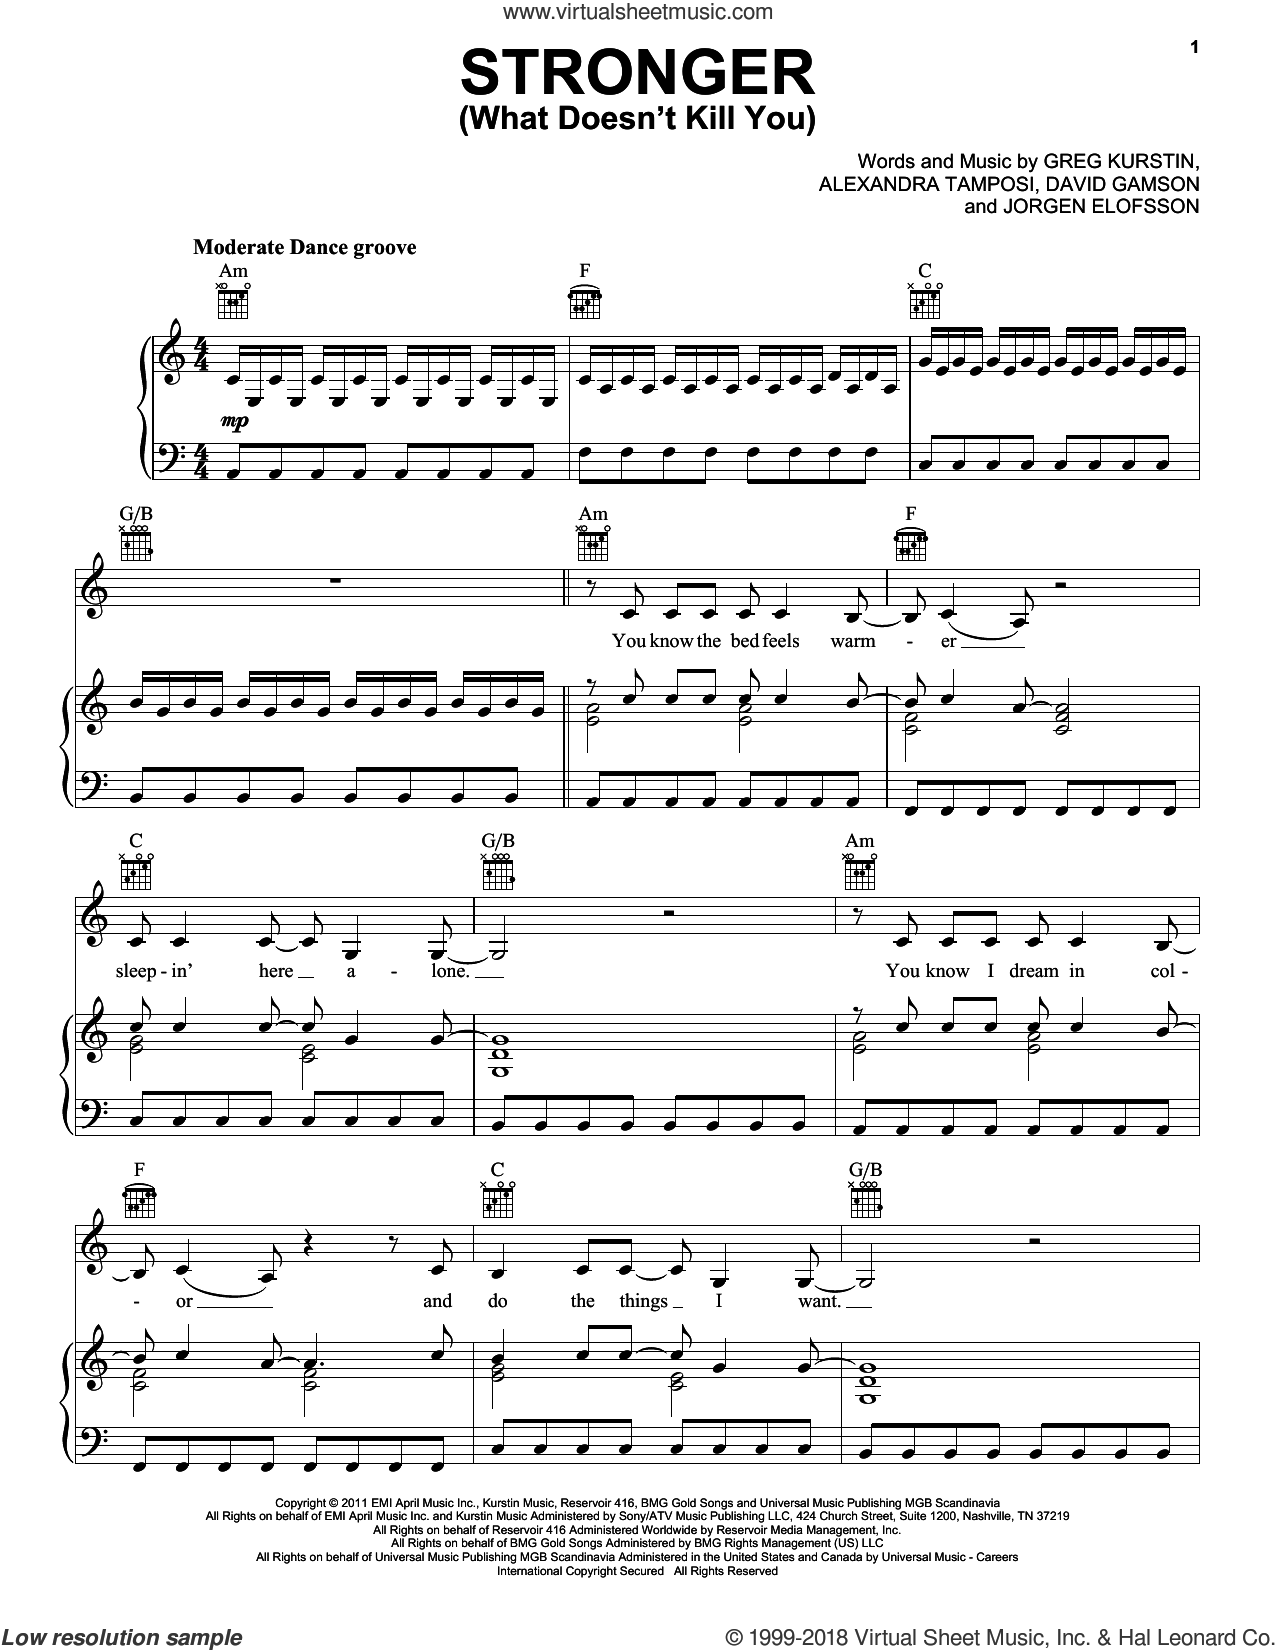 Stronger (What Doesn't Kill You) sheet music for voice, piano or guitar by Kelly Clarkson, Alexandra Tamposi, David Gamson, Greg Kurstin and Jorgen Elofsson, intermediate skill level